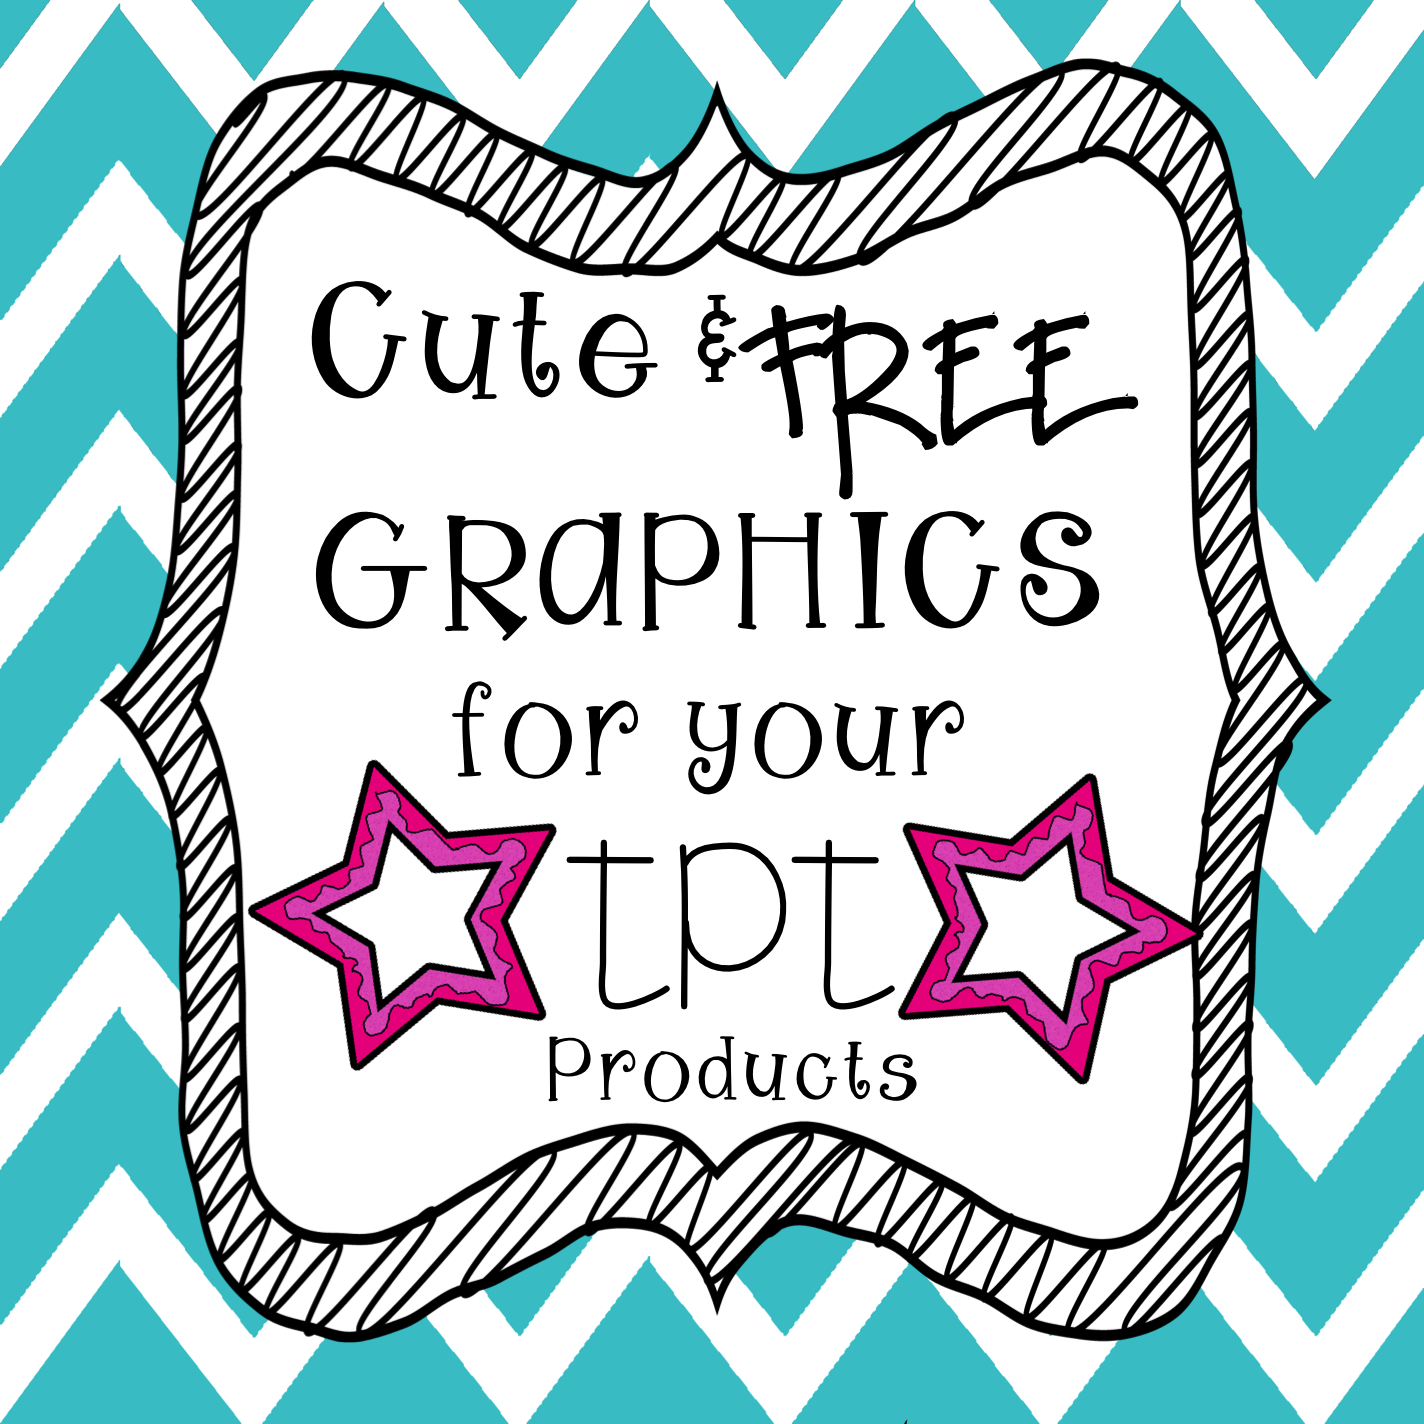 How to find free clipart and graphics for your TPT and TN